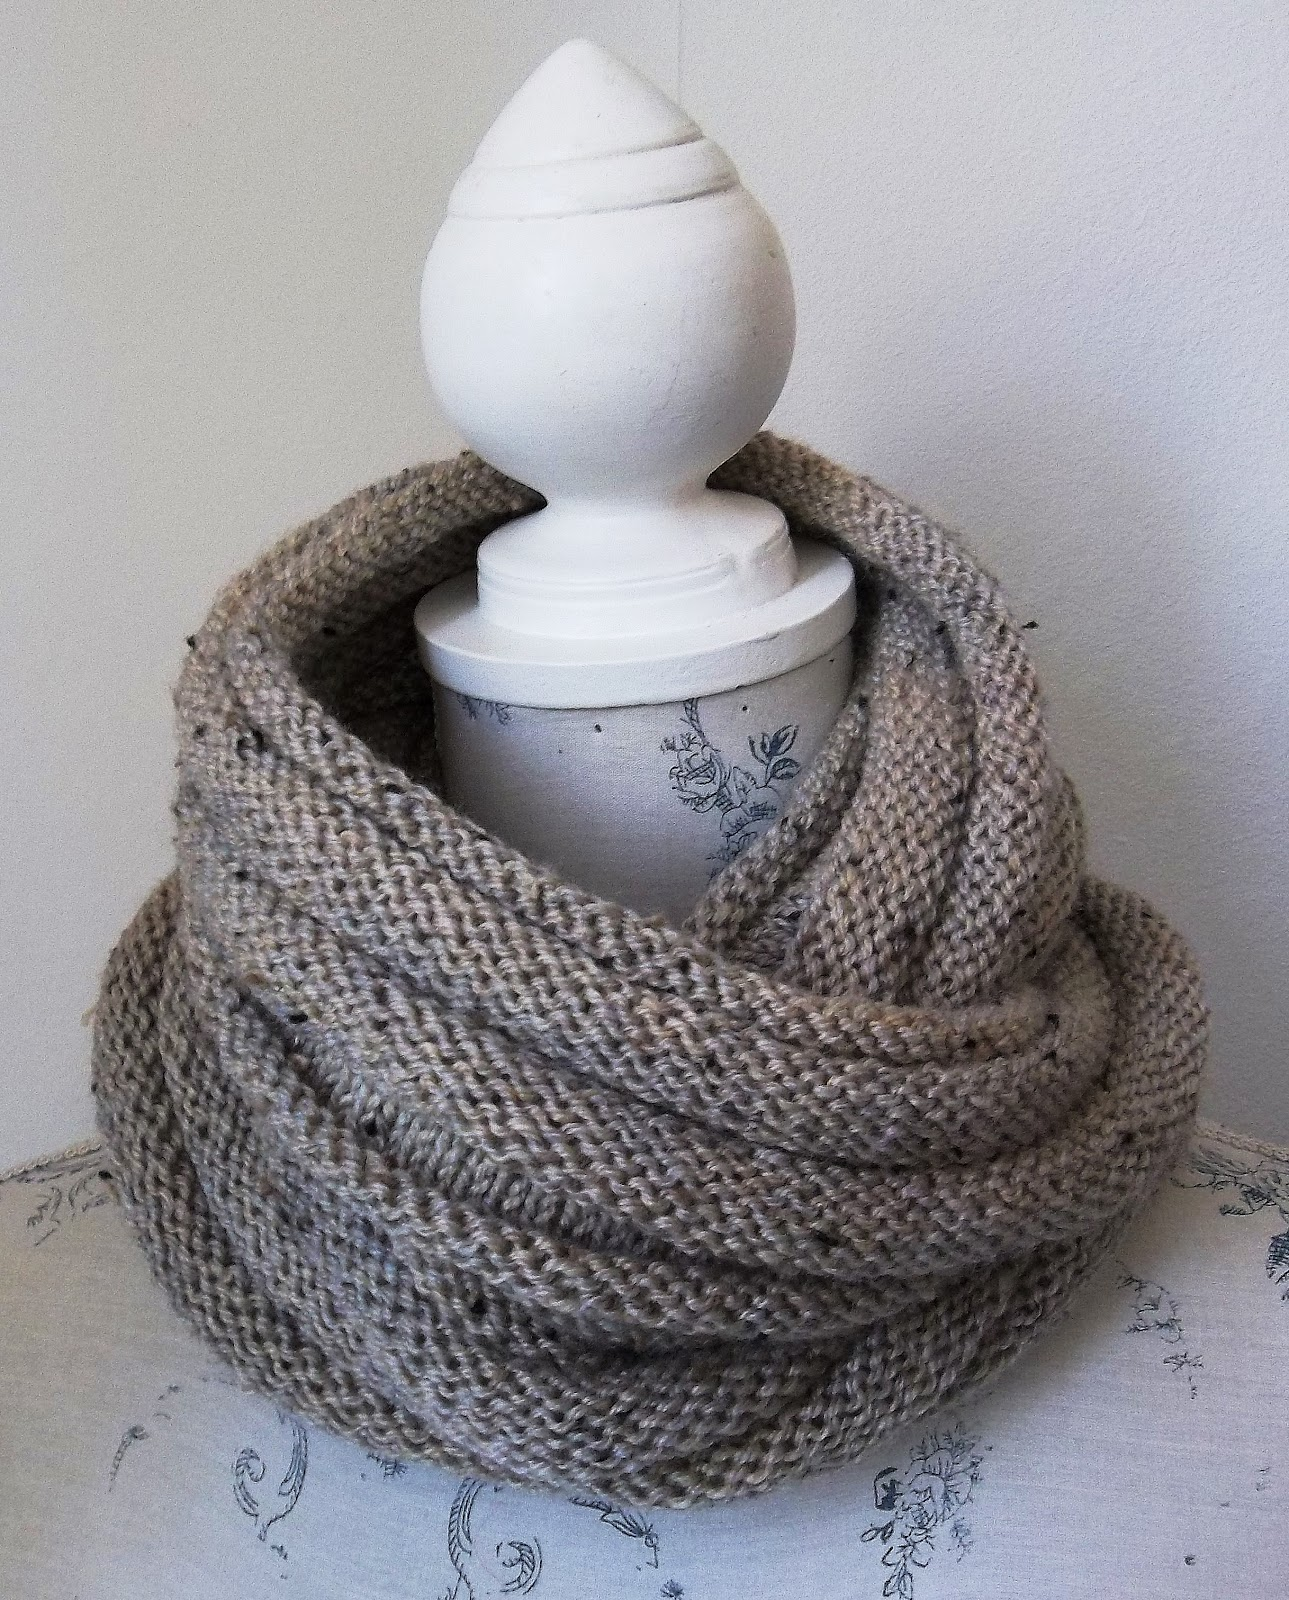 Knitting Patterns Scarf Cowl : HAND KNITTING PATTERNS. ARAN. COWLS, HATS, SCARVES AND NECK WARMERS